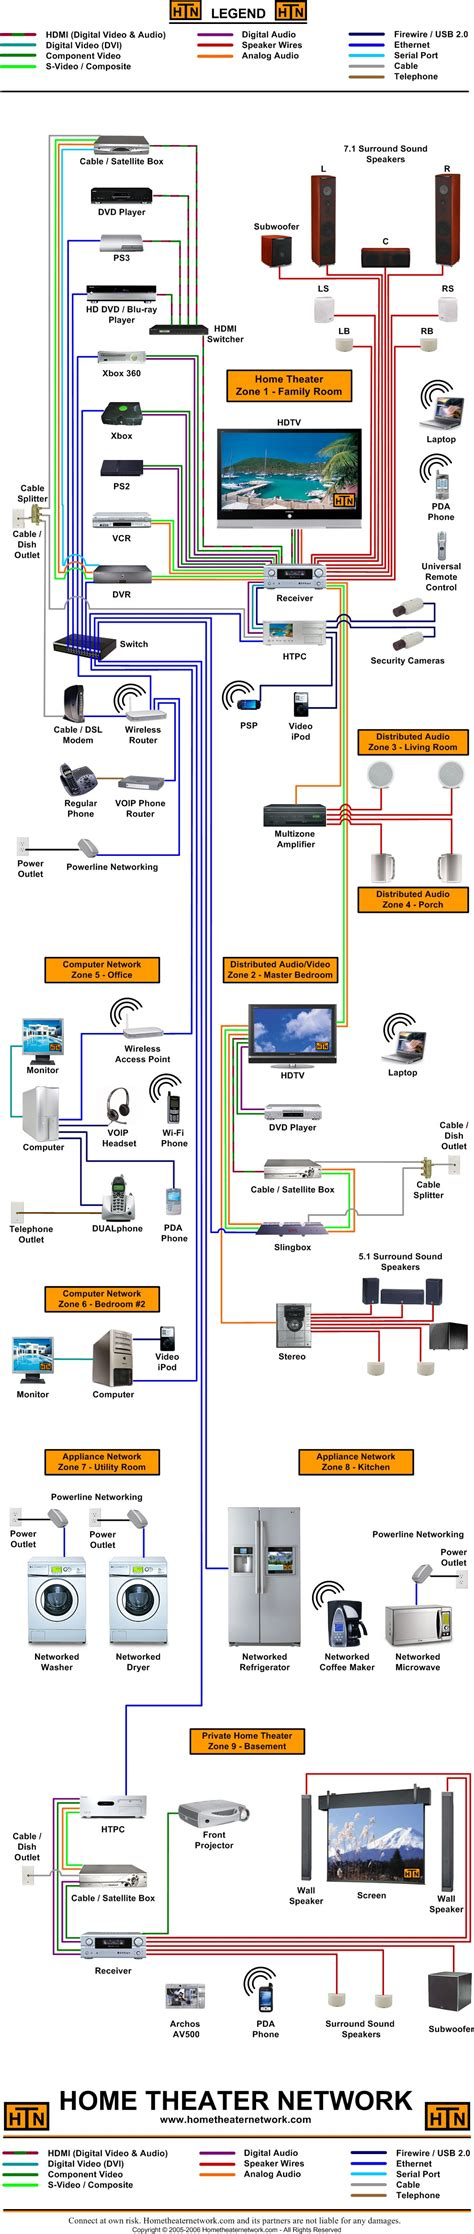 Home Theater Network The Ultimate Connection Diagram